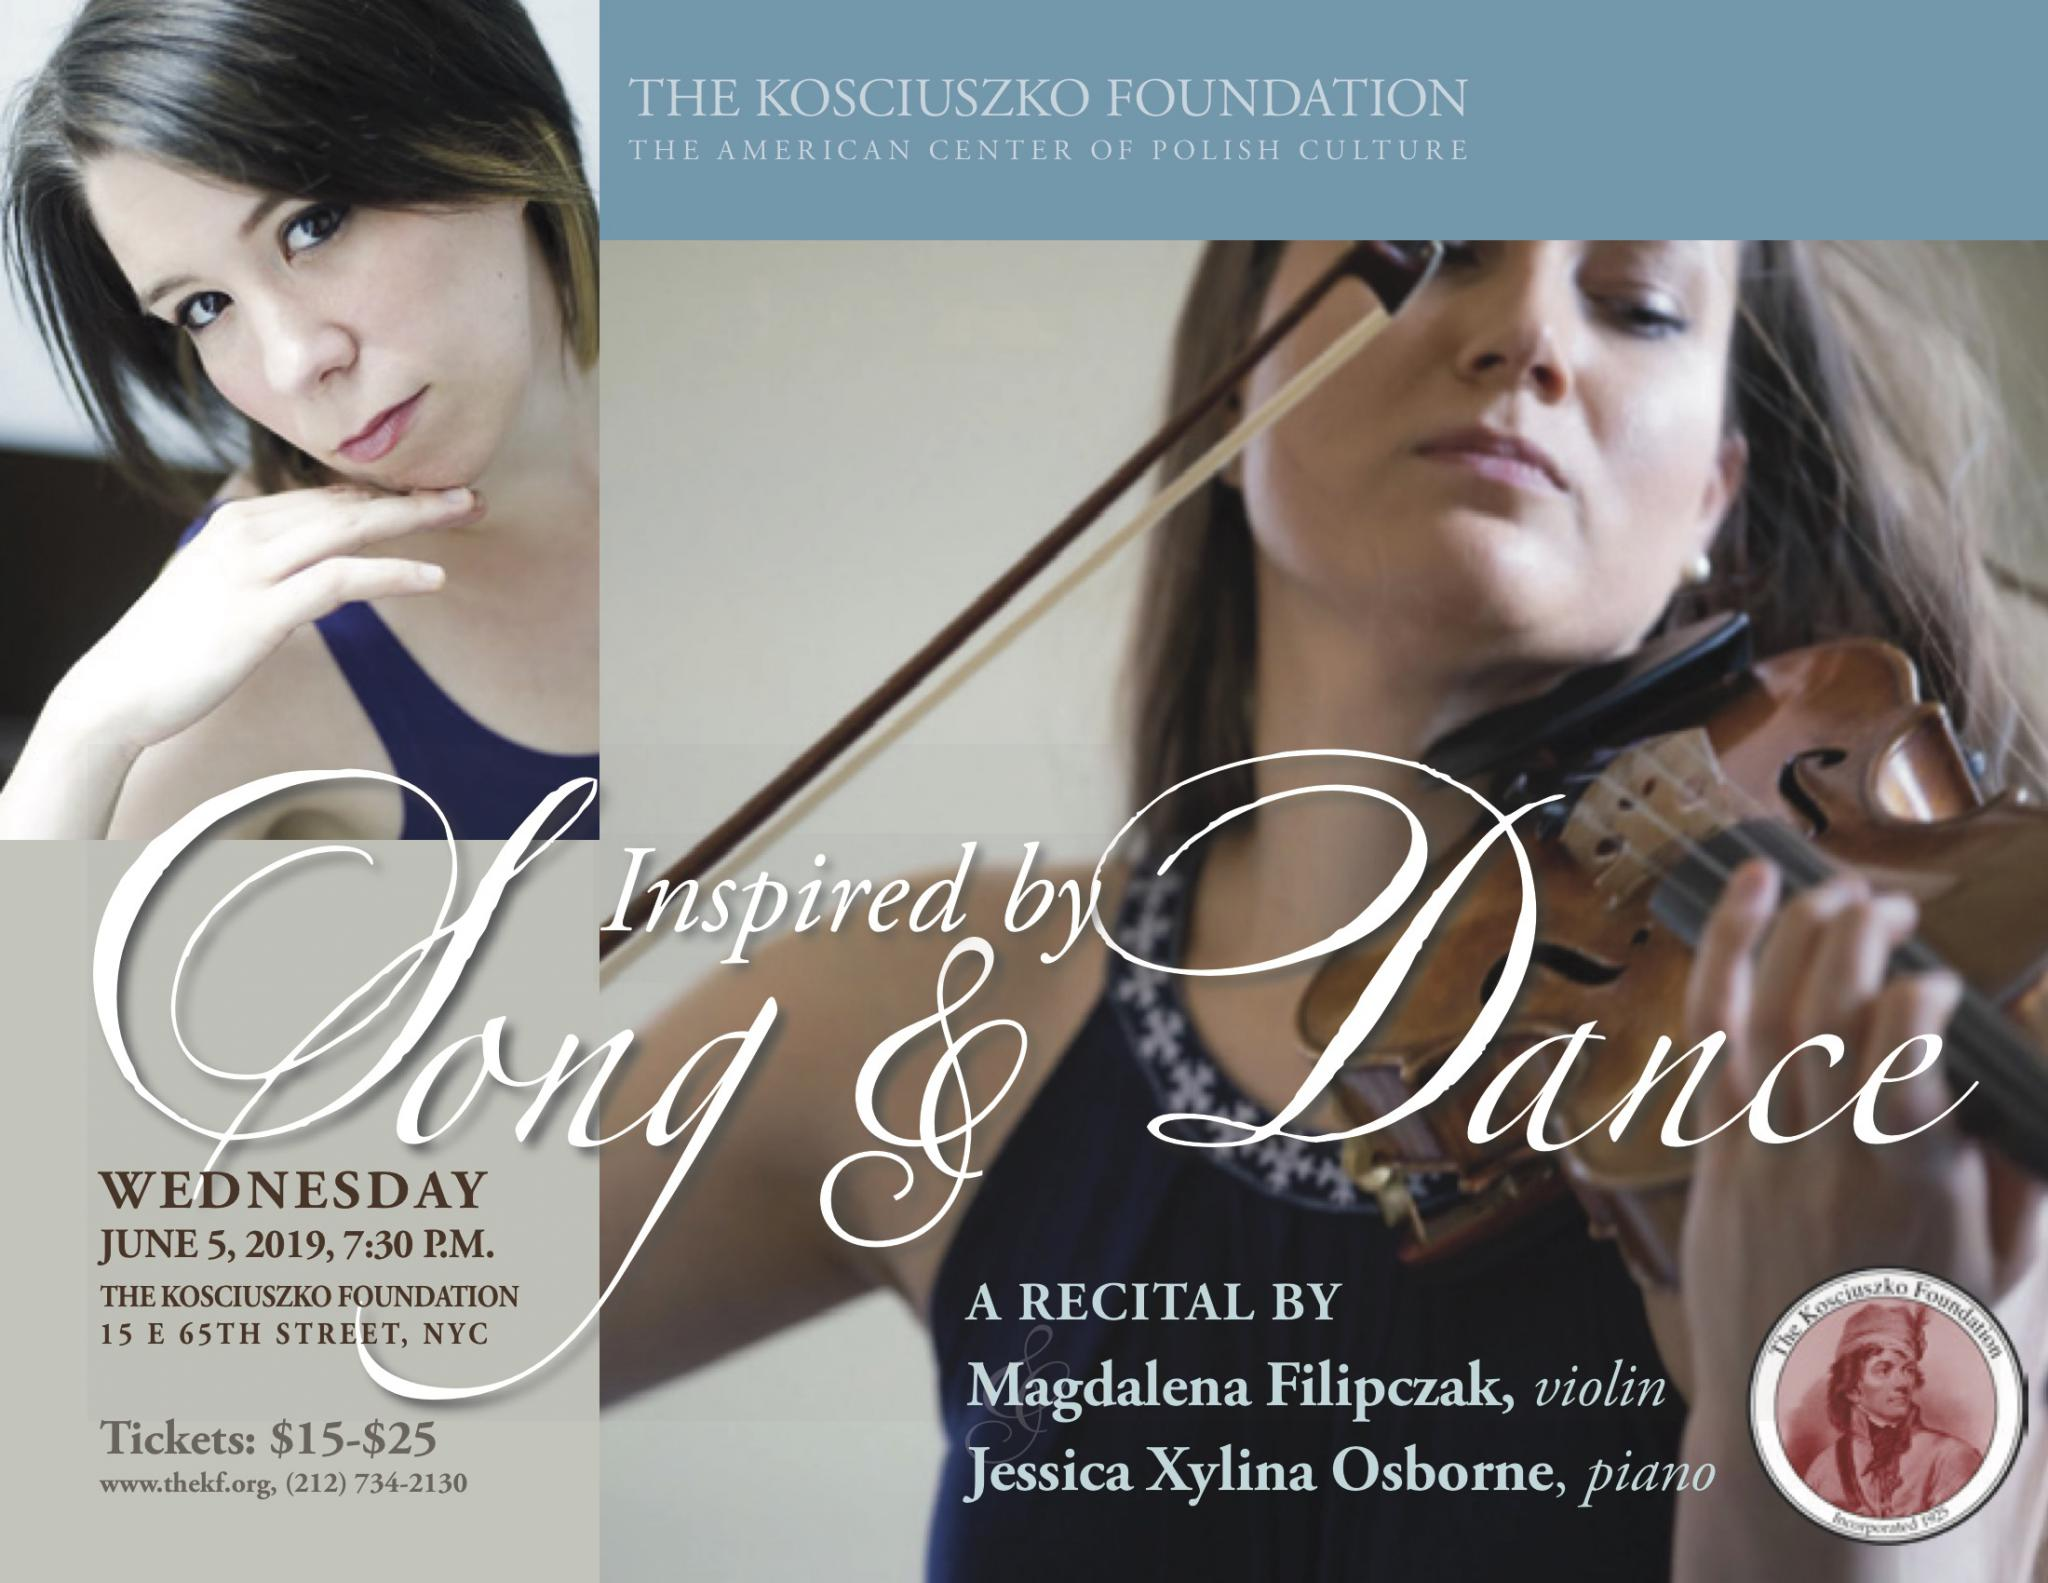 NYC: Recital by Magdalena Filipczak and Jessica Xylina Osborne - Inspired by Song and Dance